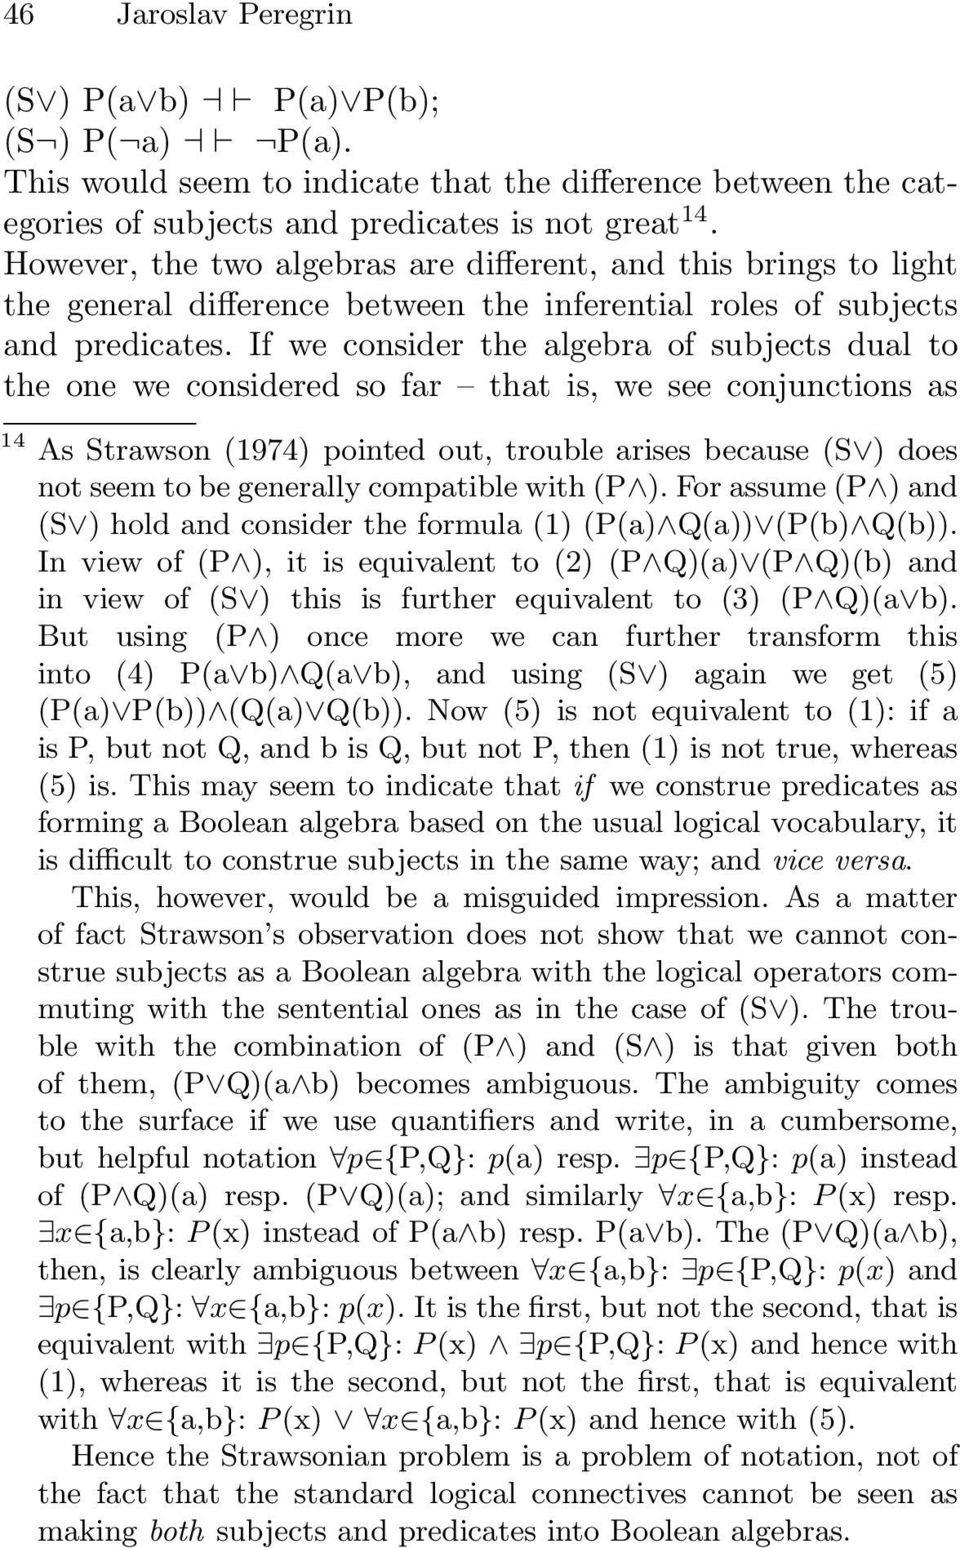 If we consider the algebra of subjects dual to the one we considered so far that is, we see conjunctions as 14 As Strawson (1974) pointed out, trouble arises because (S ) does not seem to be